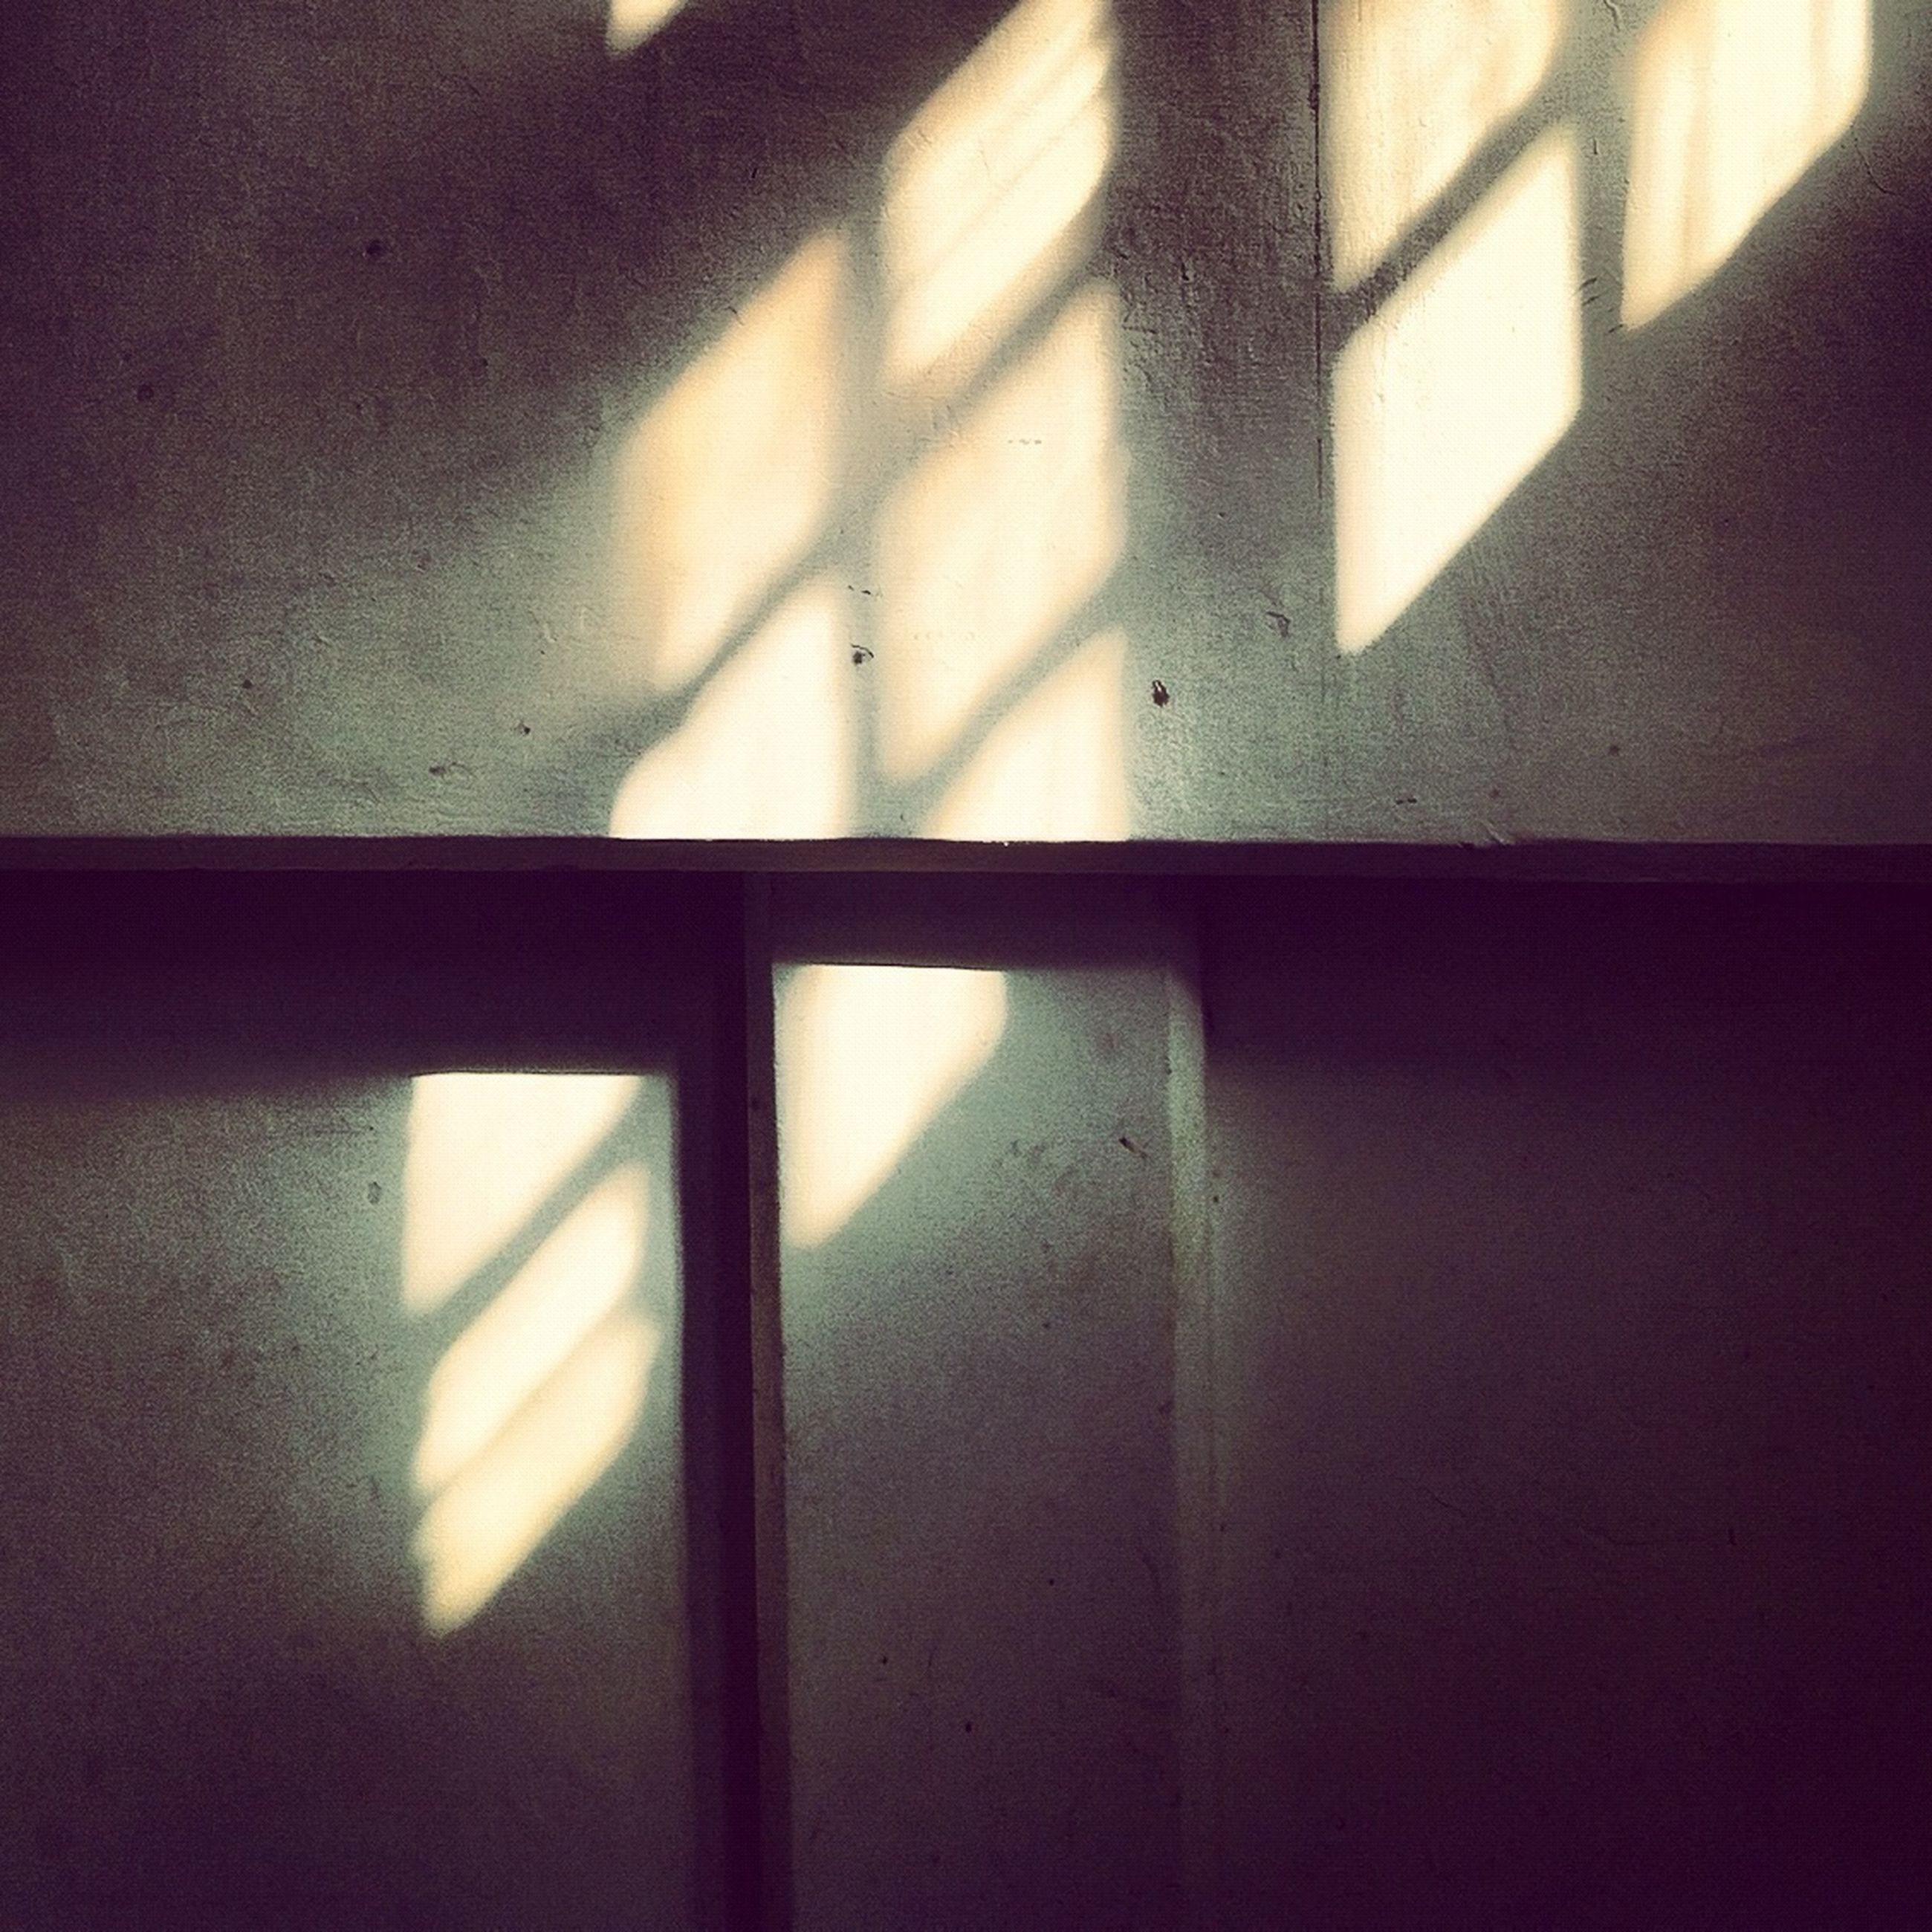 indoors, wall - building feature, window, home interior, architecture, built structure, wall, shadow, door, no people, house, close-up, domestic room, sunlight, closed, room, illuminated, flooring, pattern, day